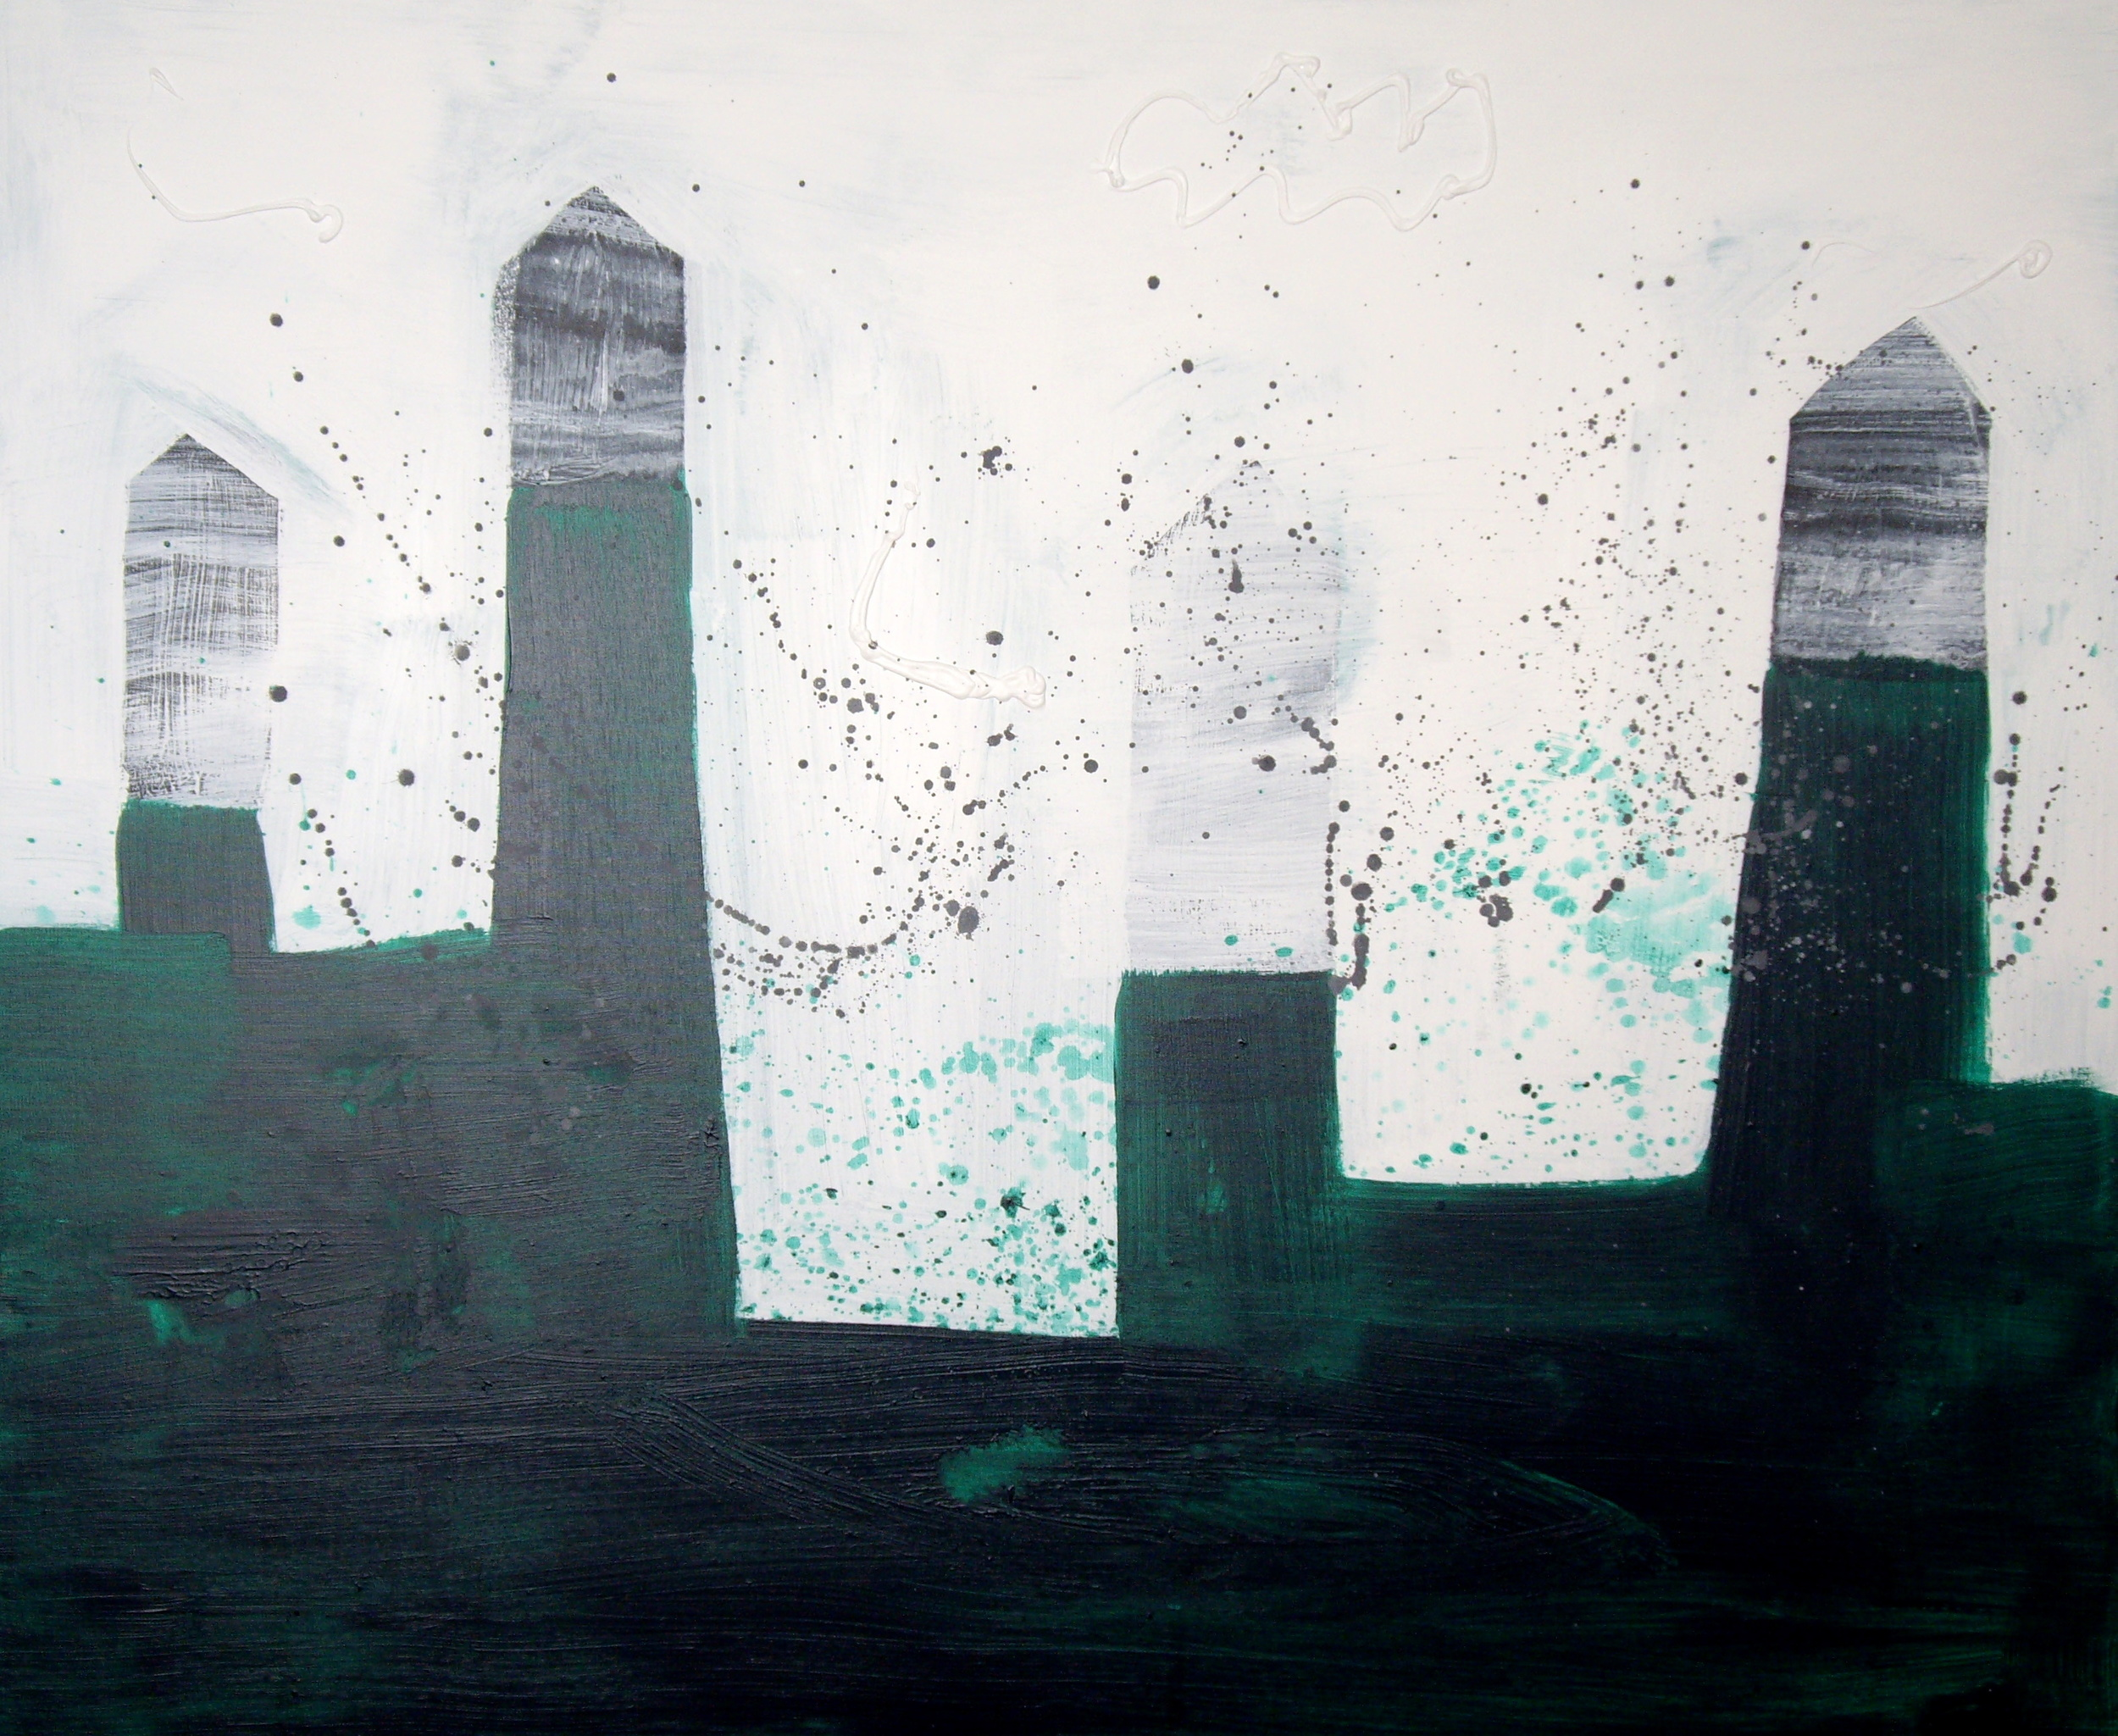 HOUSES ON SQUARE HILLS, ACRYLIC ON CANVAS, 120 X 90CM